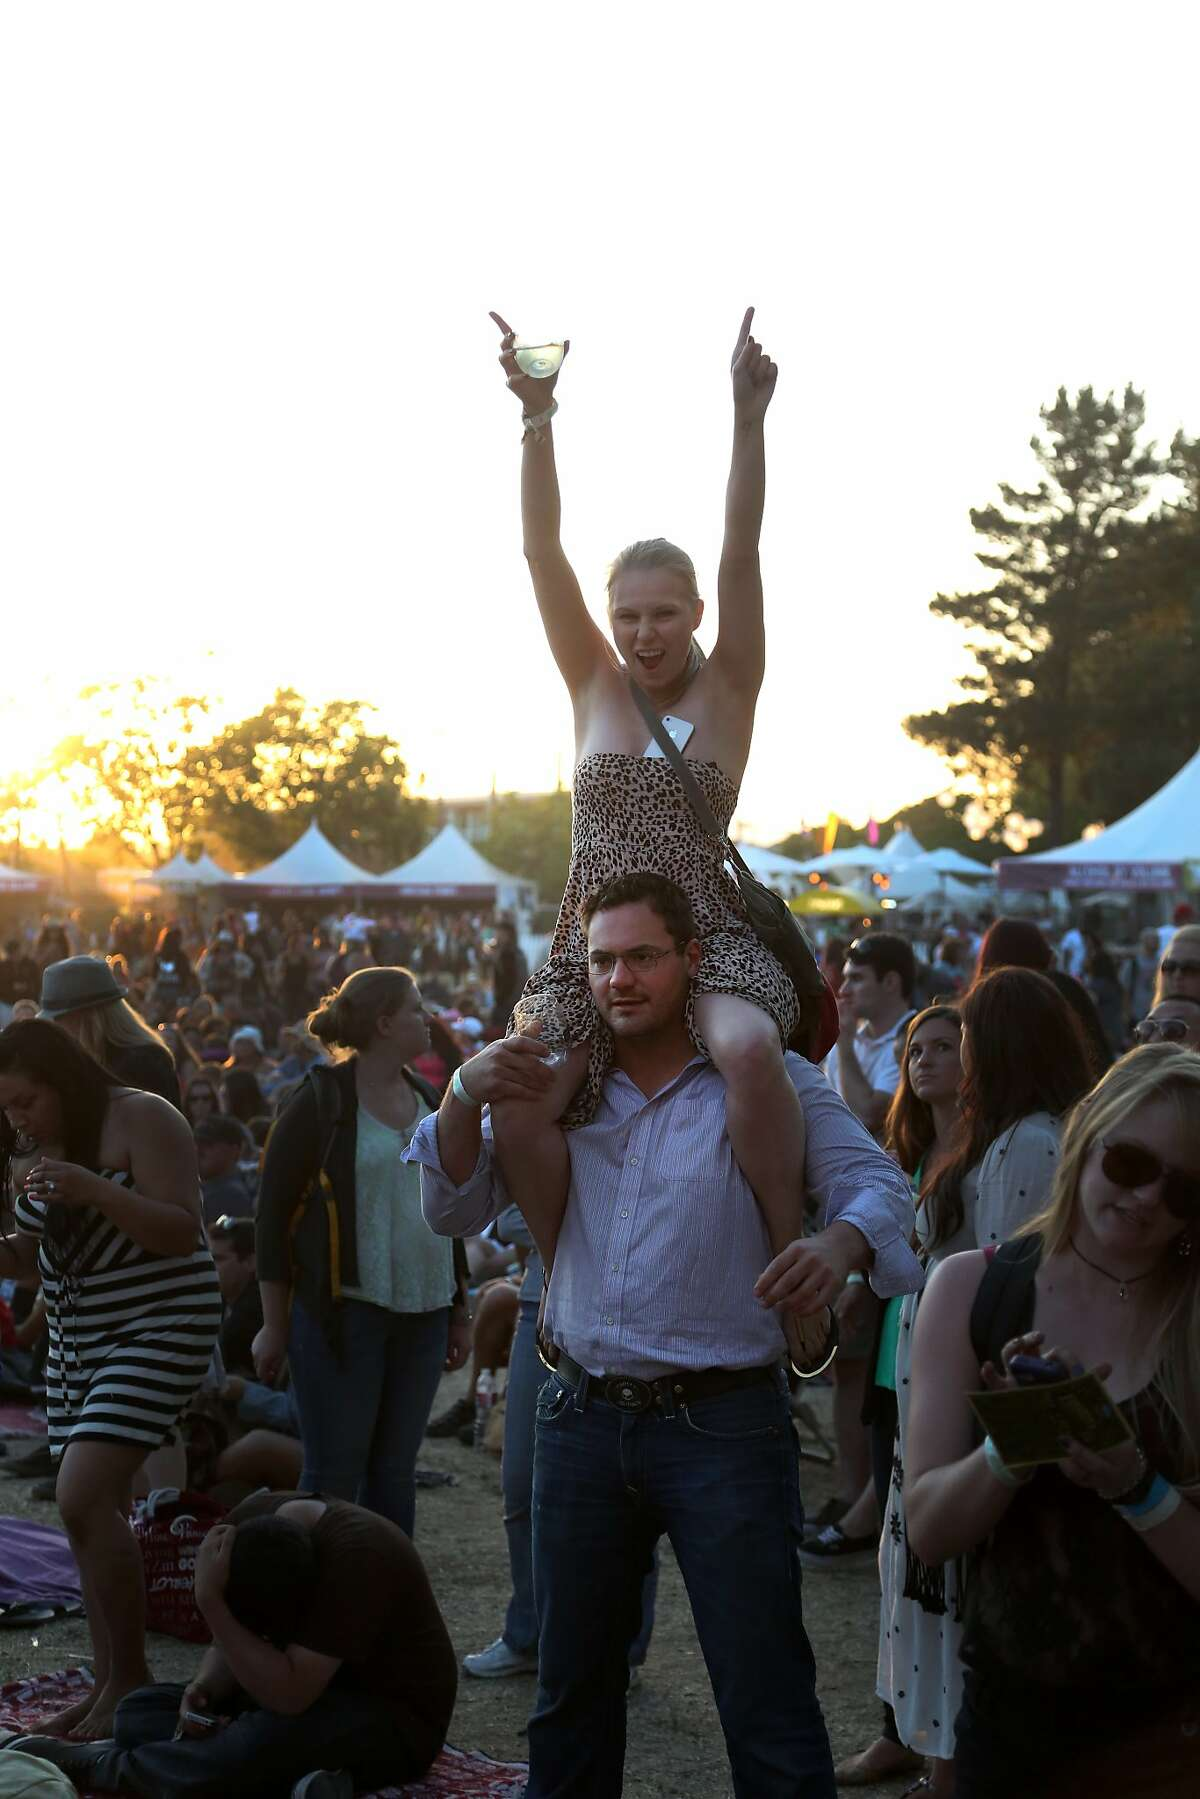 Bryan Hollingsworth of Orange County holds a cheering Meagan Nelson of Novato on his shoulders before The Fray performs at the 2014 Bottlerock Napa Valley music, food and wine festival on Sunday, June 1, 2014 in Napa, Calif.